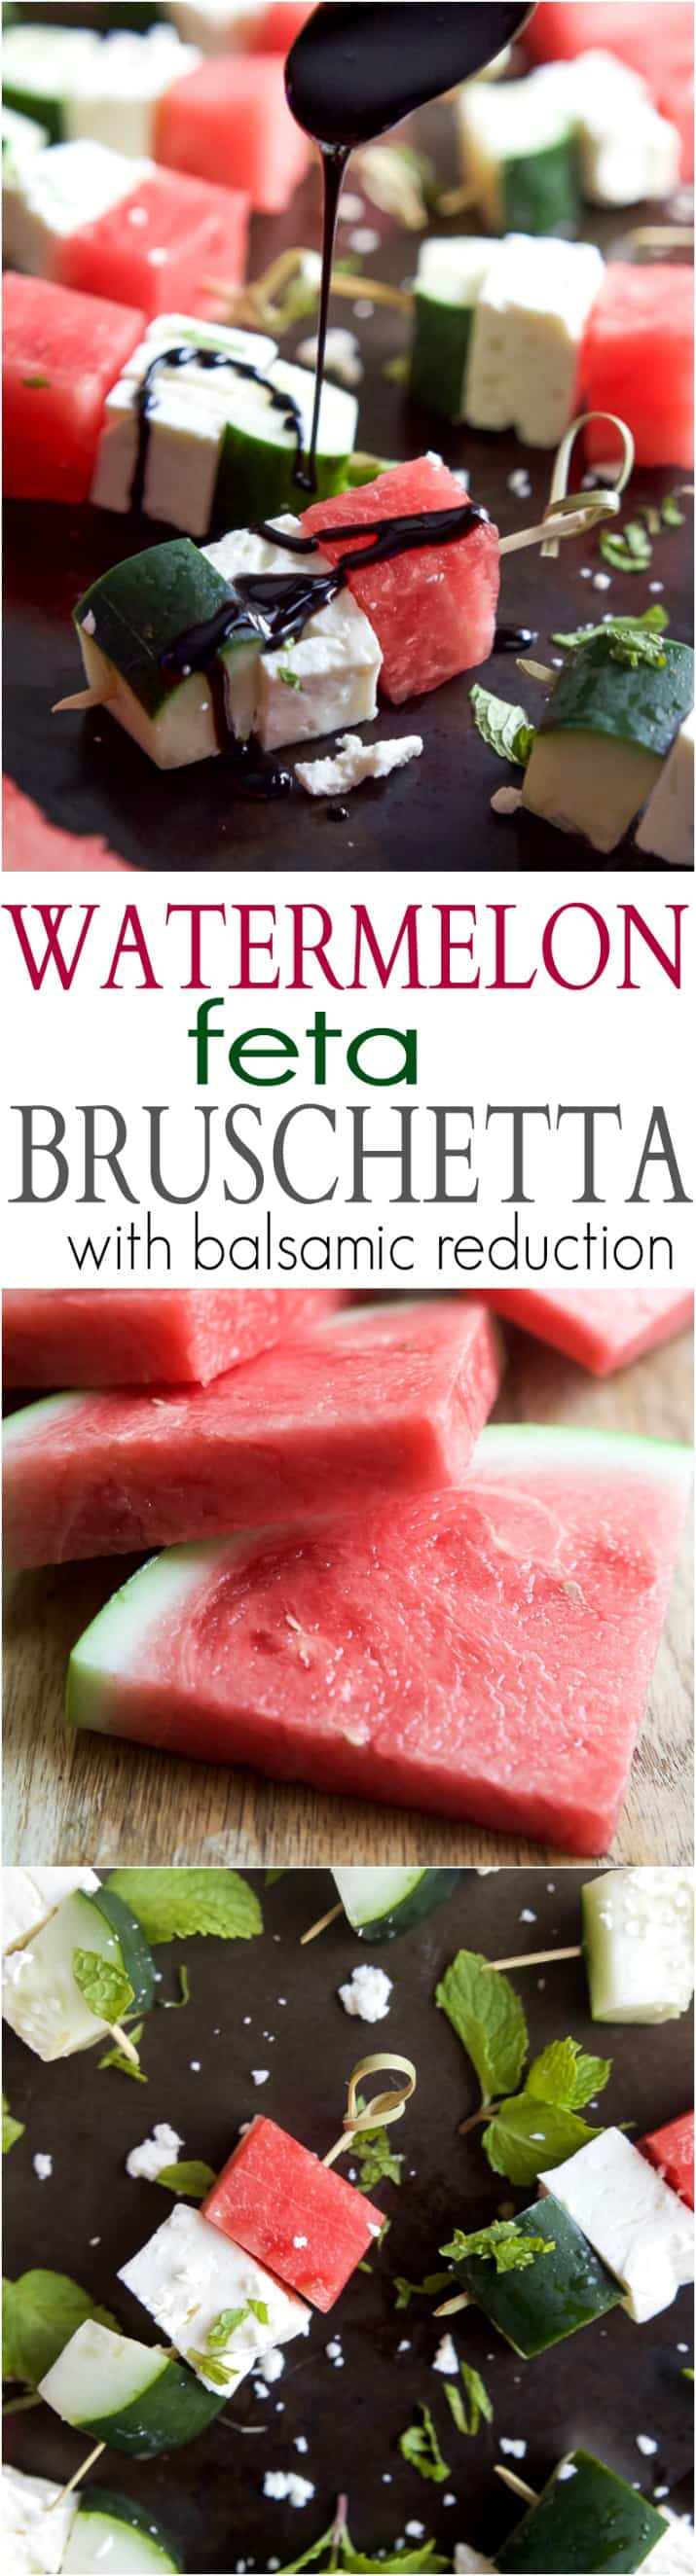 Watermelon Feta Bruschetta, the easiest appetizer recipe you'll ever make! Watermelon, Cucumber, and Feta Cheese all skewered together and topped with a sweet Balsamic Reduction that'll blow your mind. A must this summer! | joyfulhealthyeats.com #glutenfree